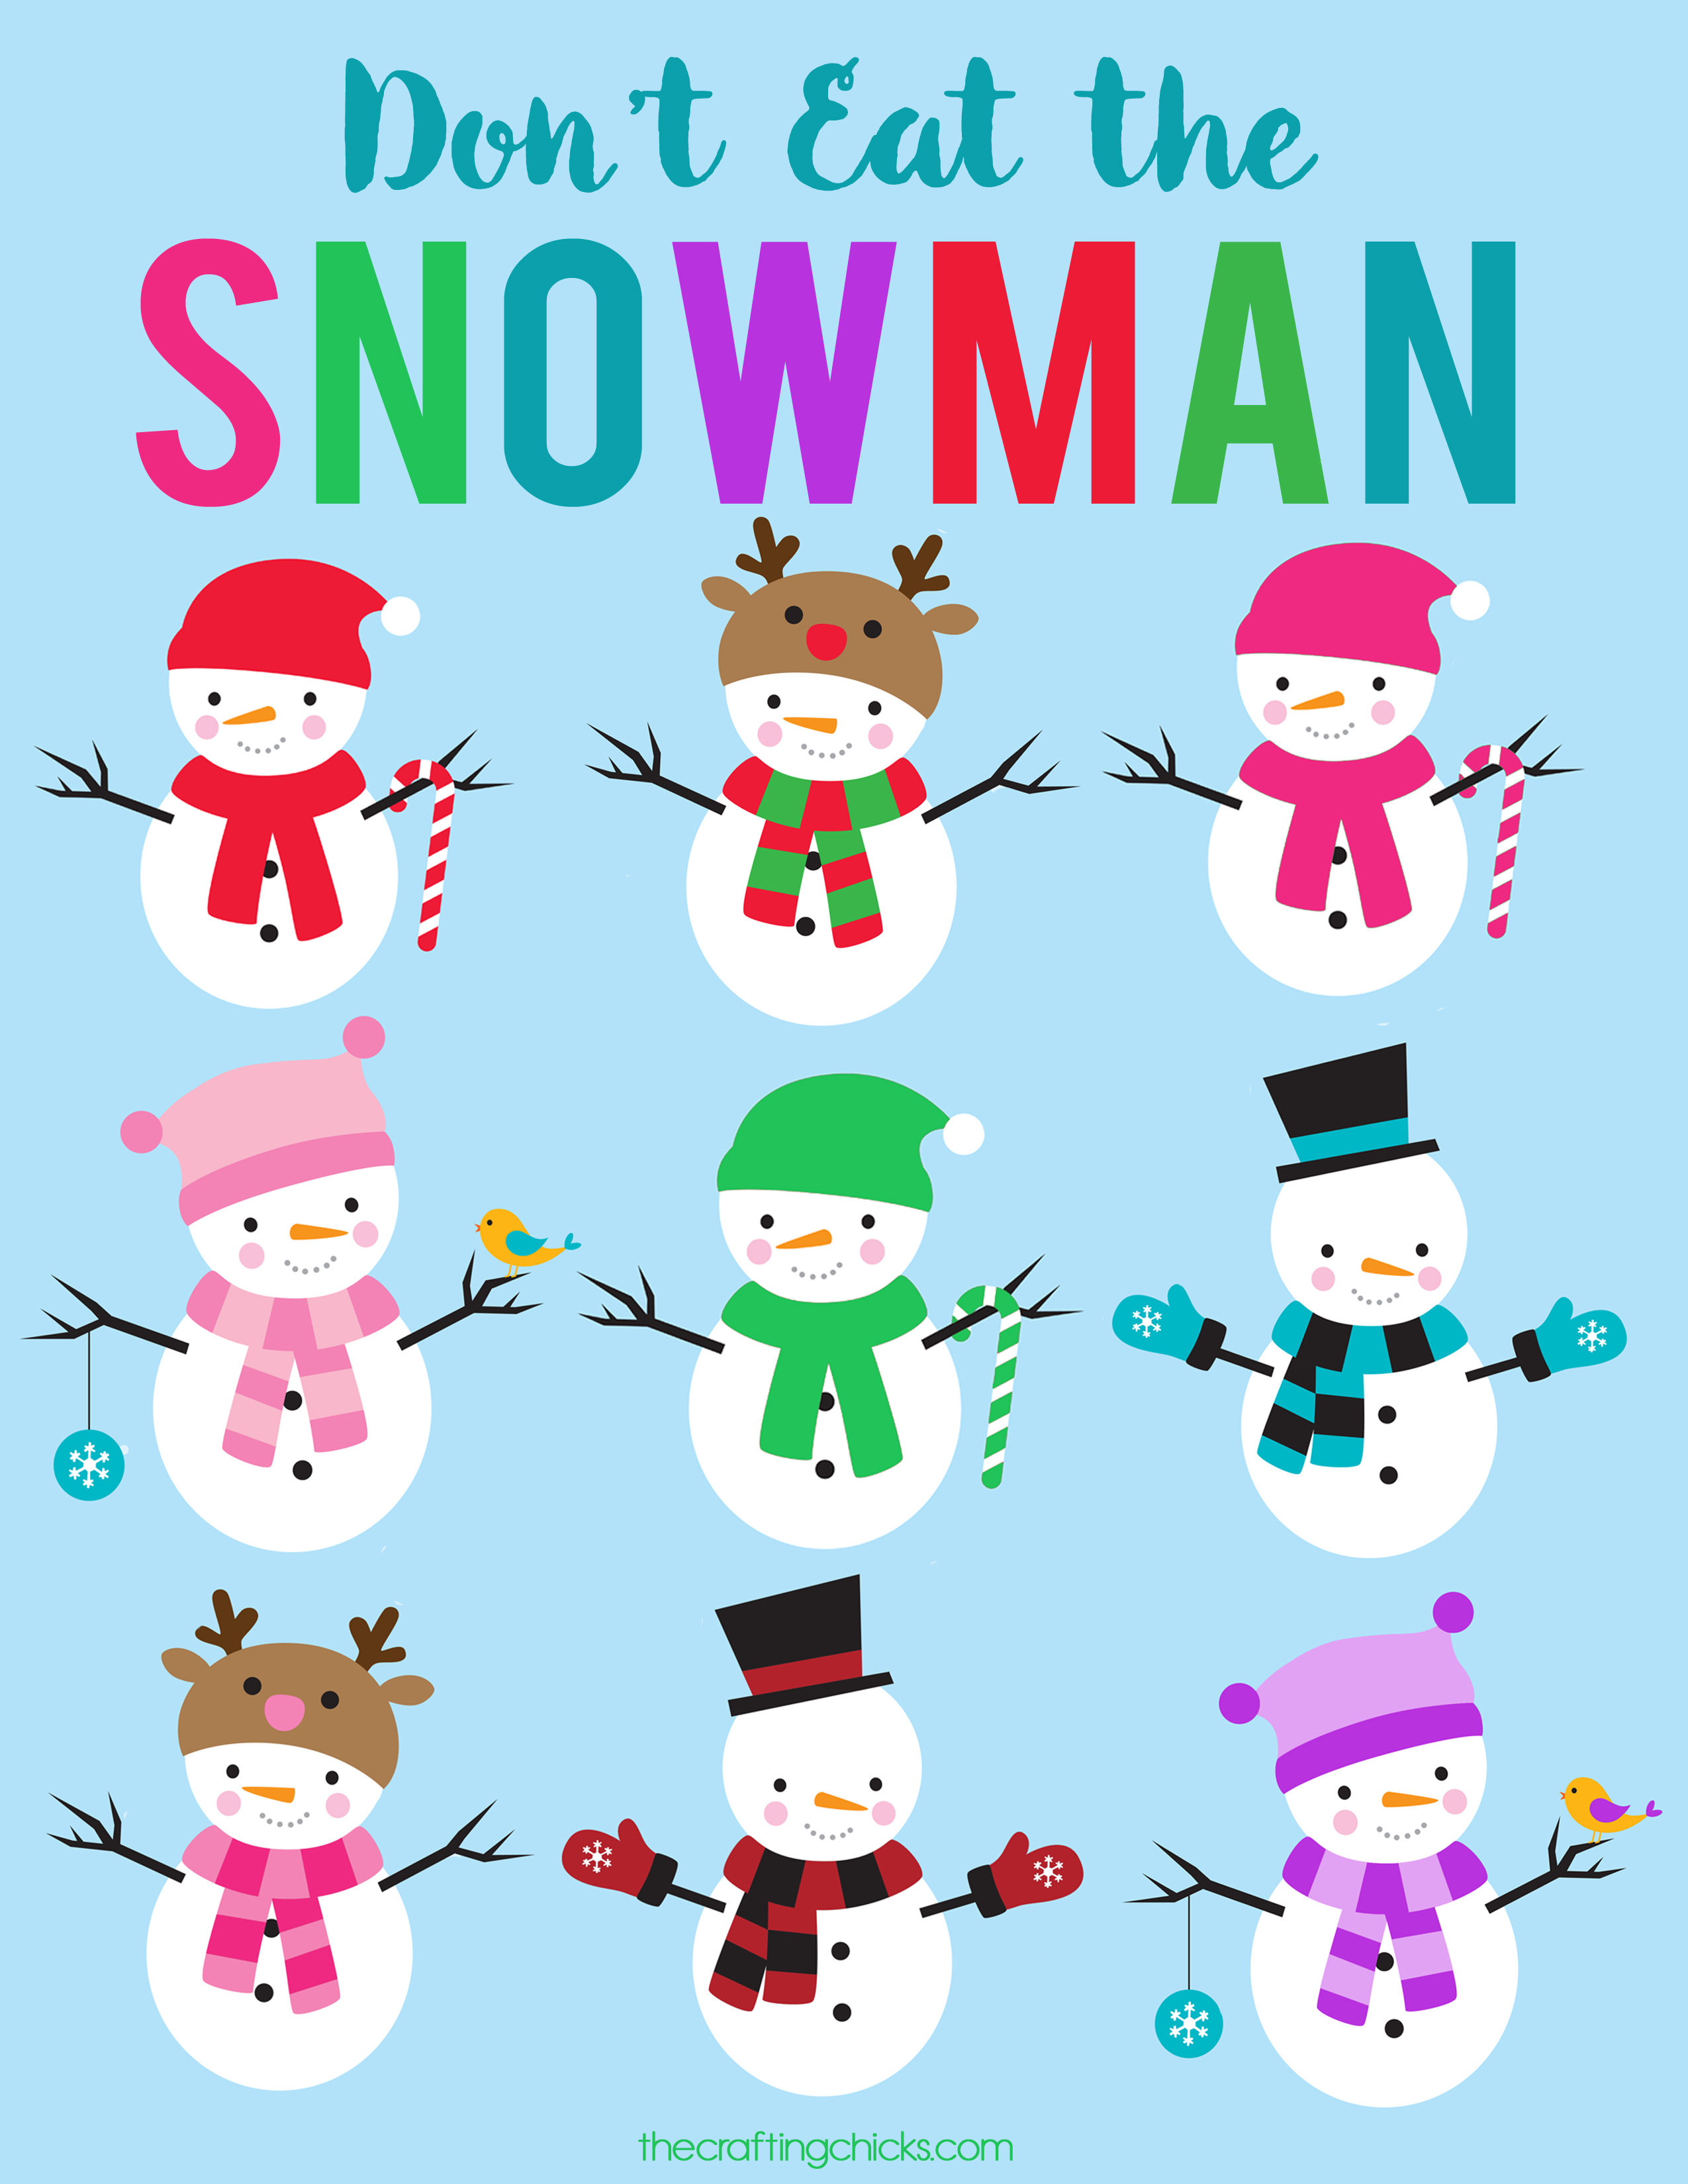 Don't Eat The Snowman Free Printable - The Crafting Chicks - Don T Eat Pete Free Printable